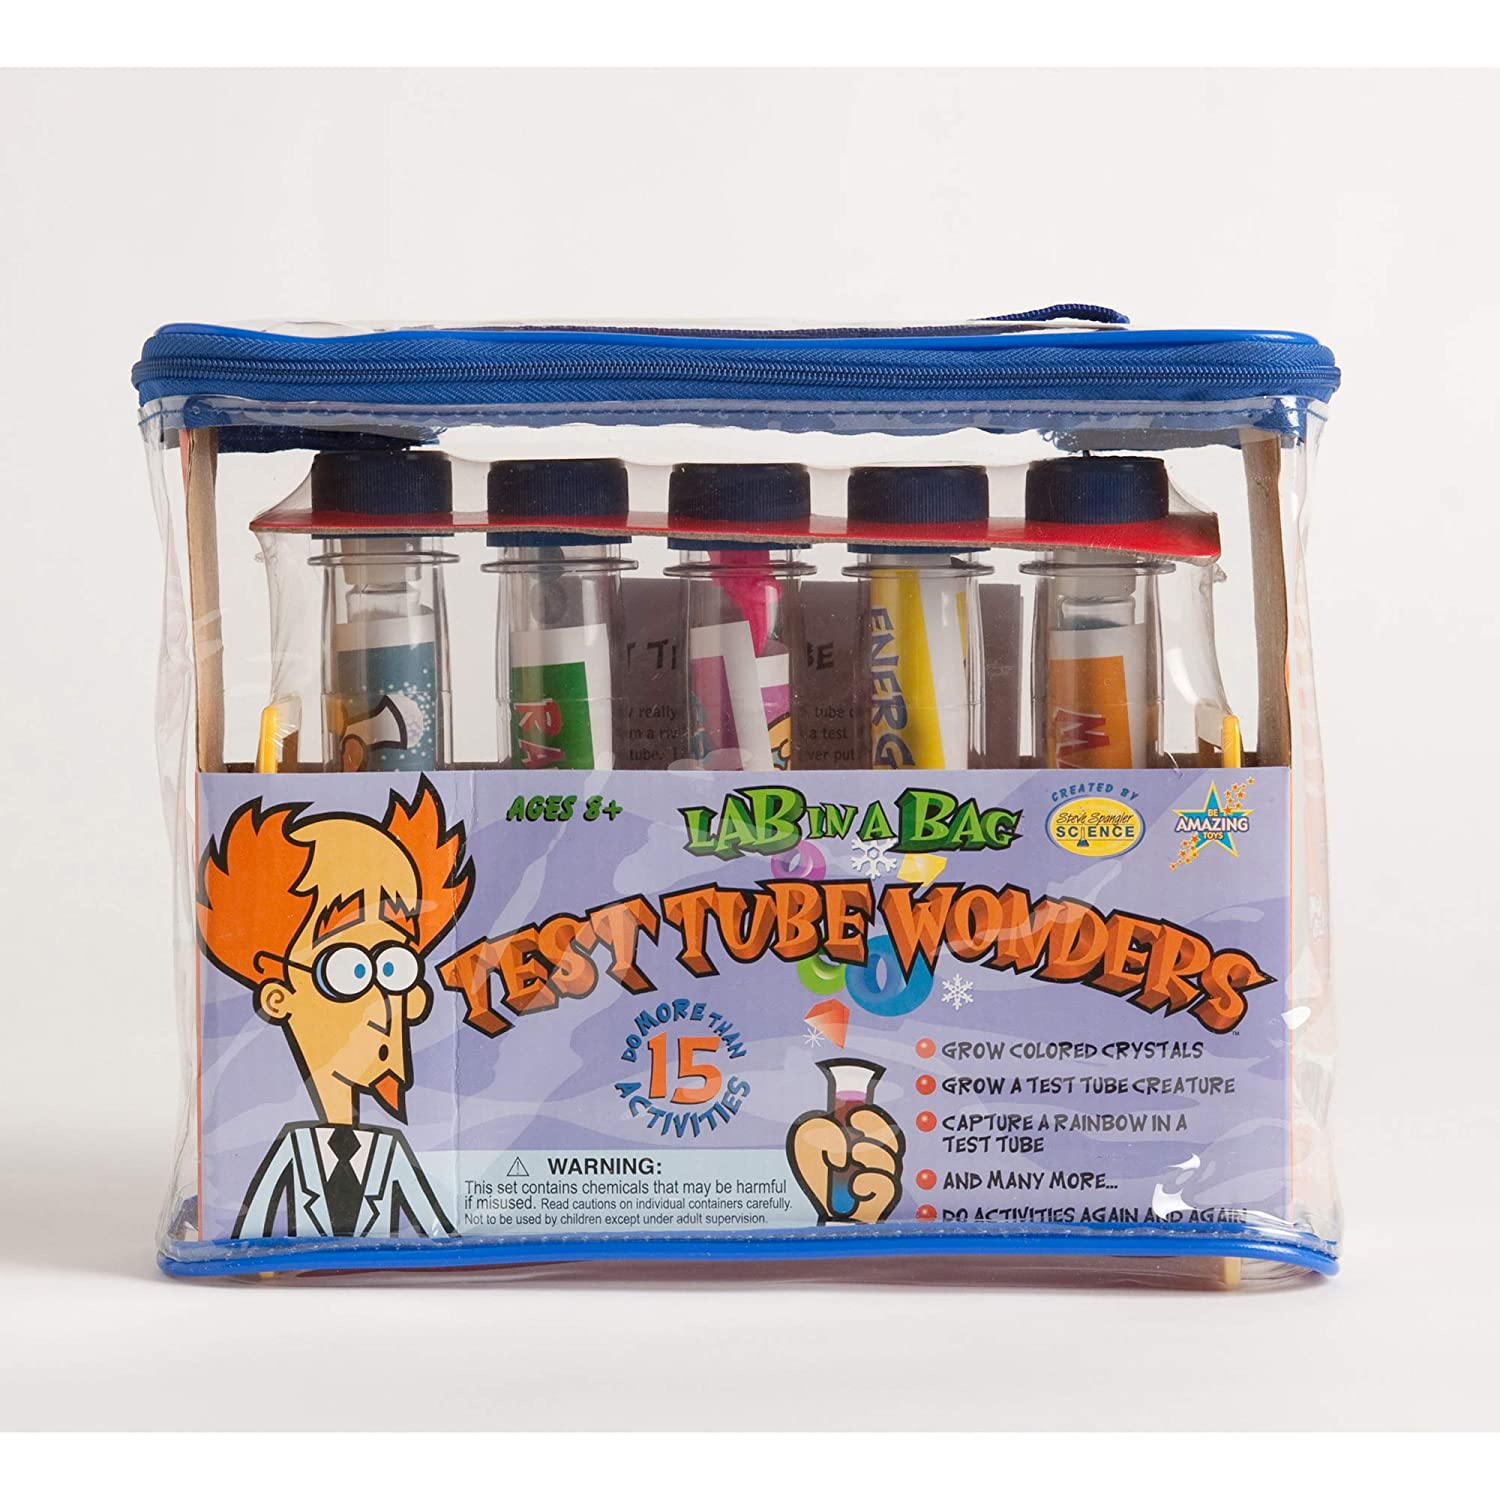 Amazon Be Amazing Lab In A Bag Test Tube Wonders Toys Games